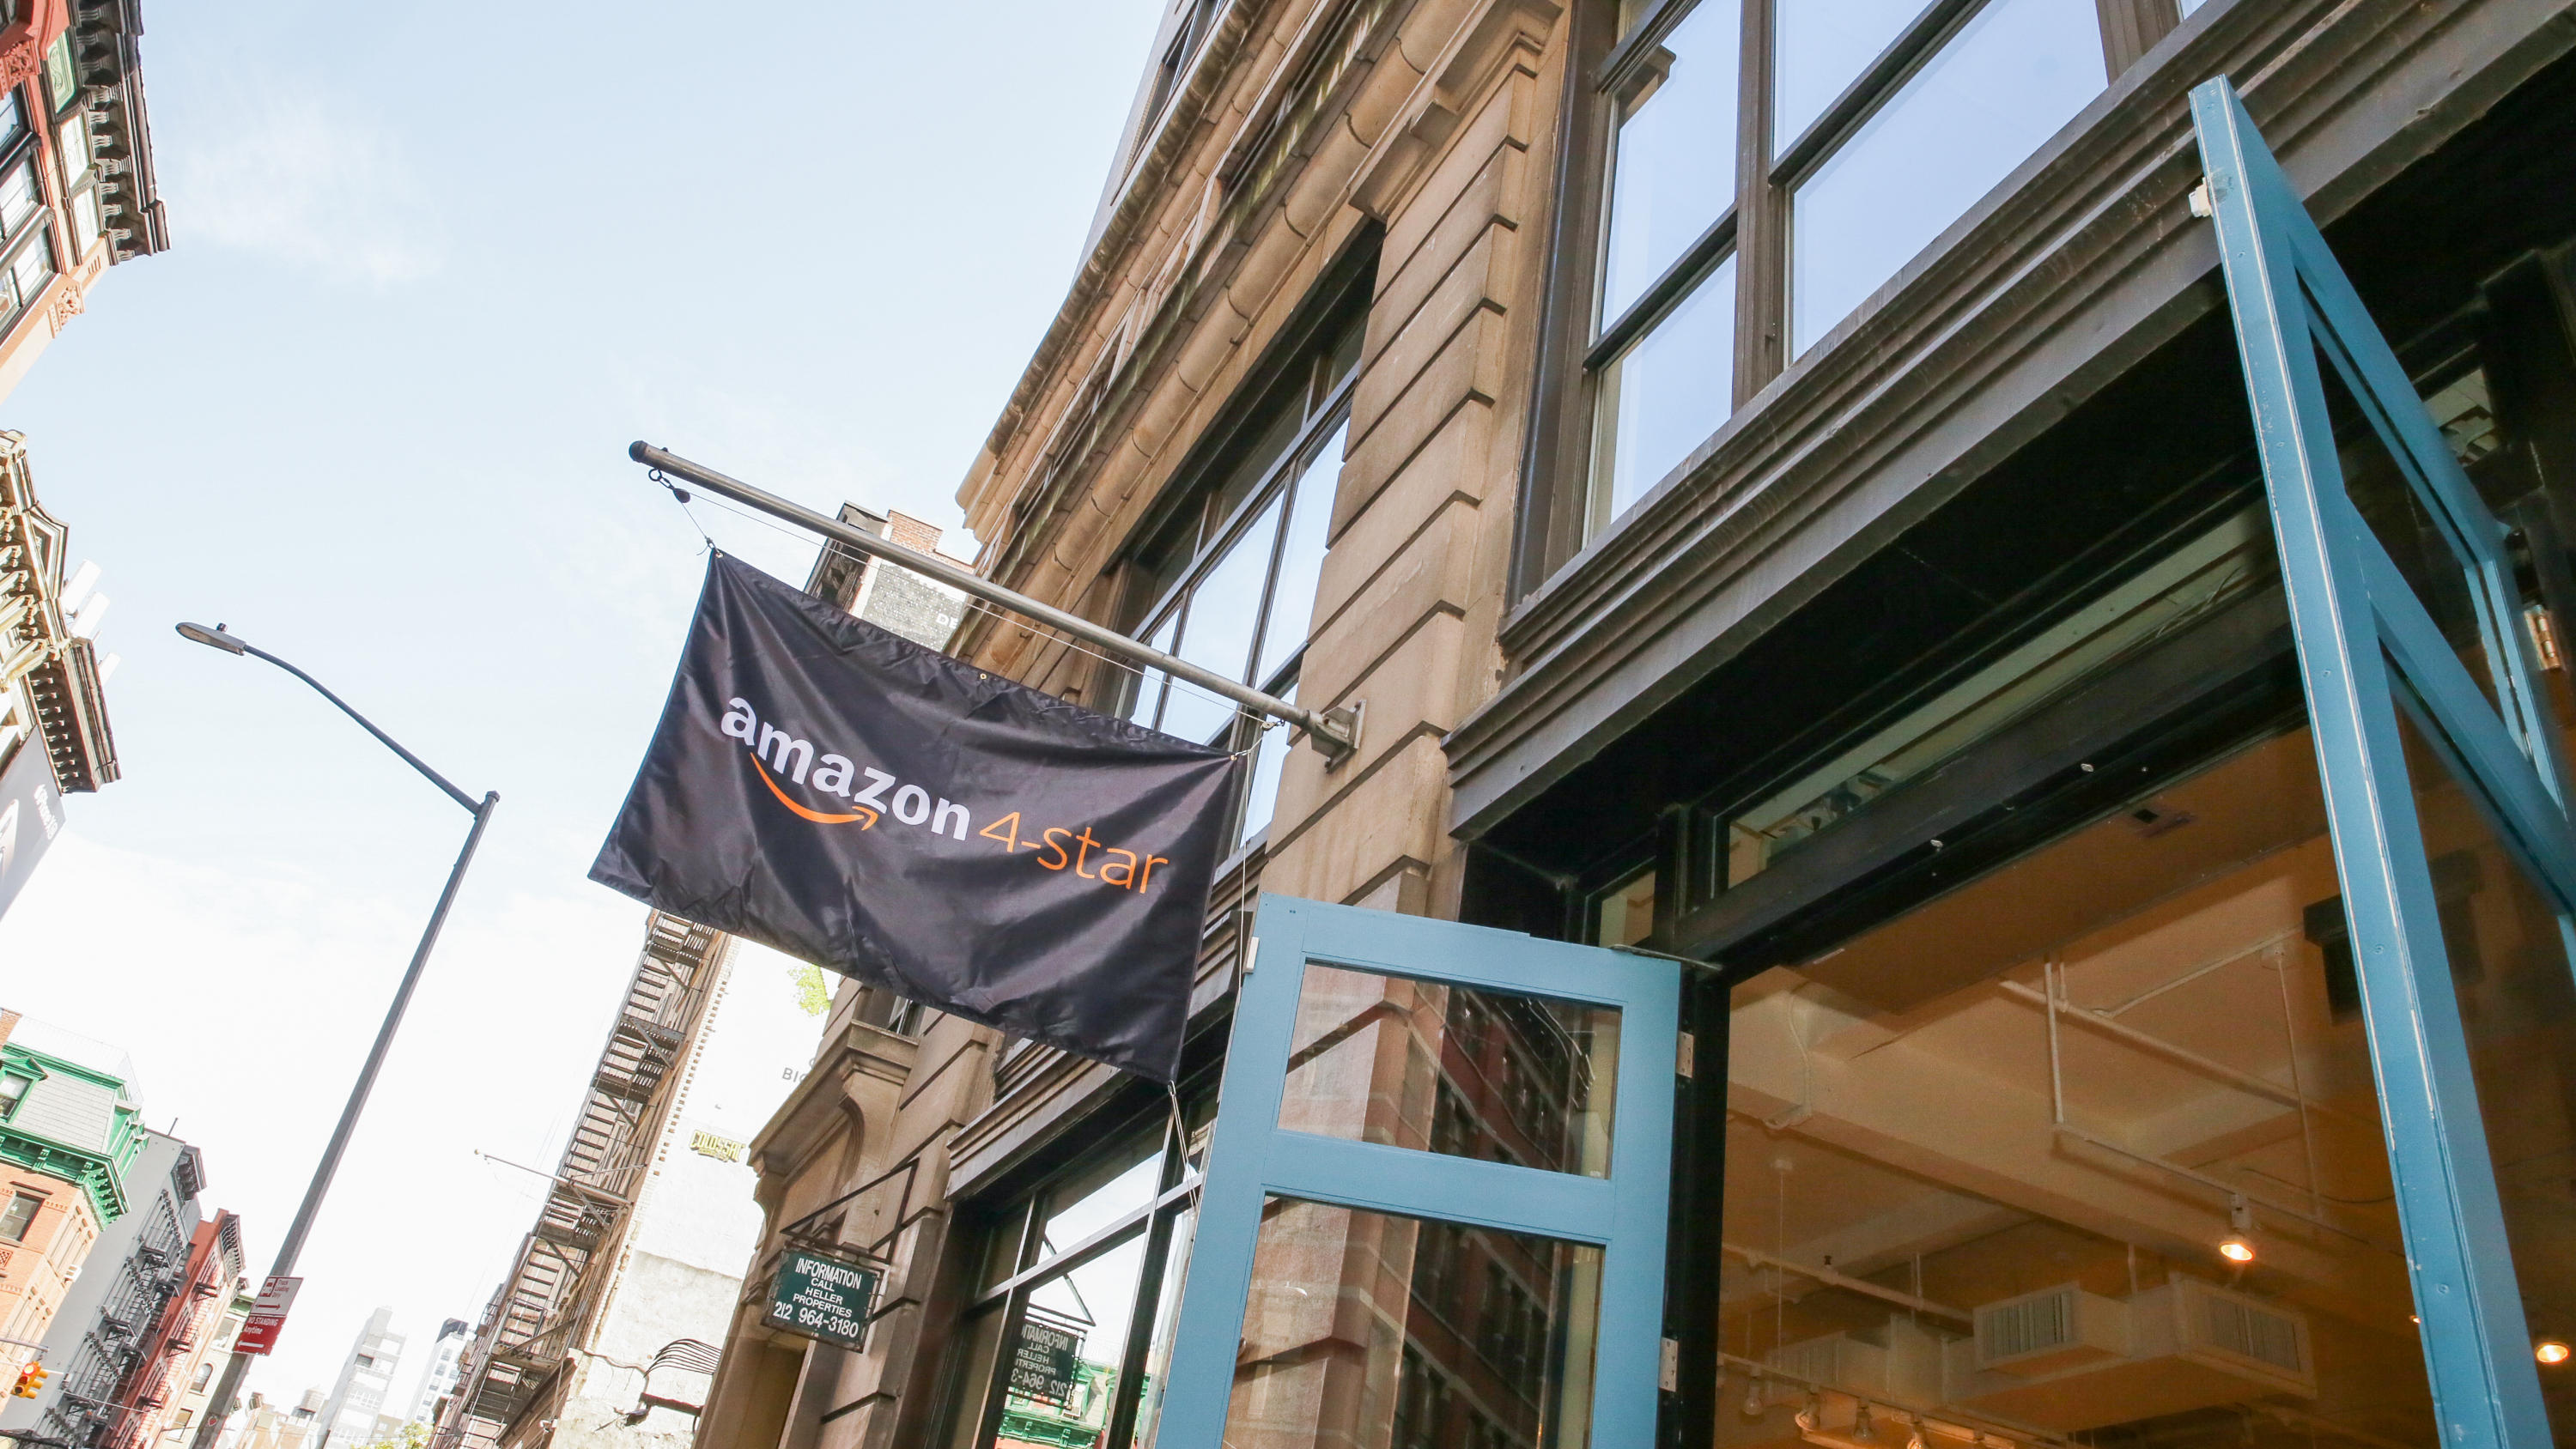 Amazon 4-Star store opens in NYC